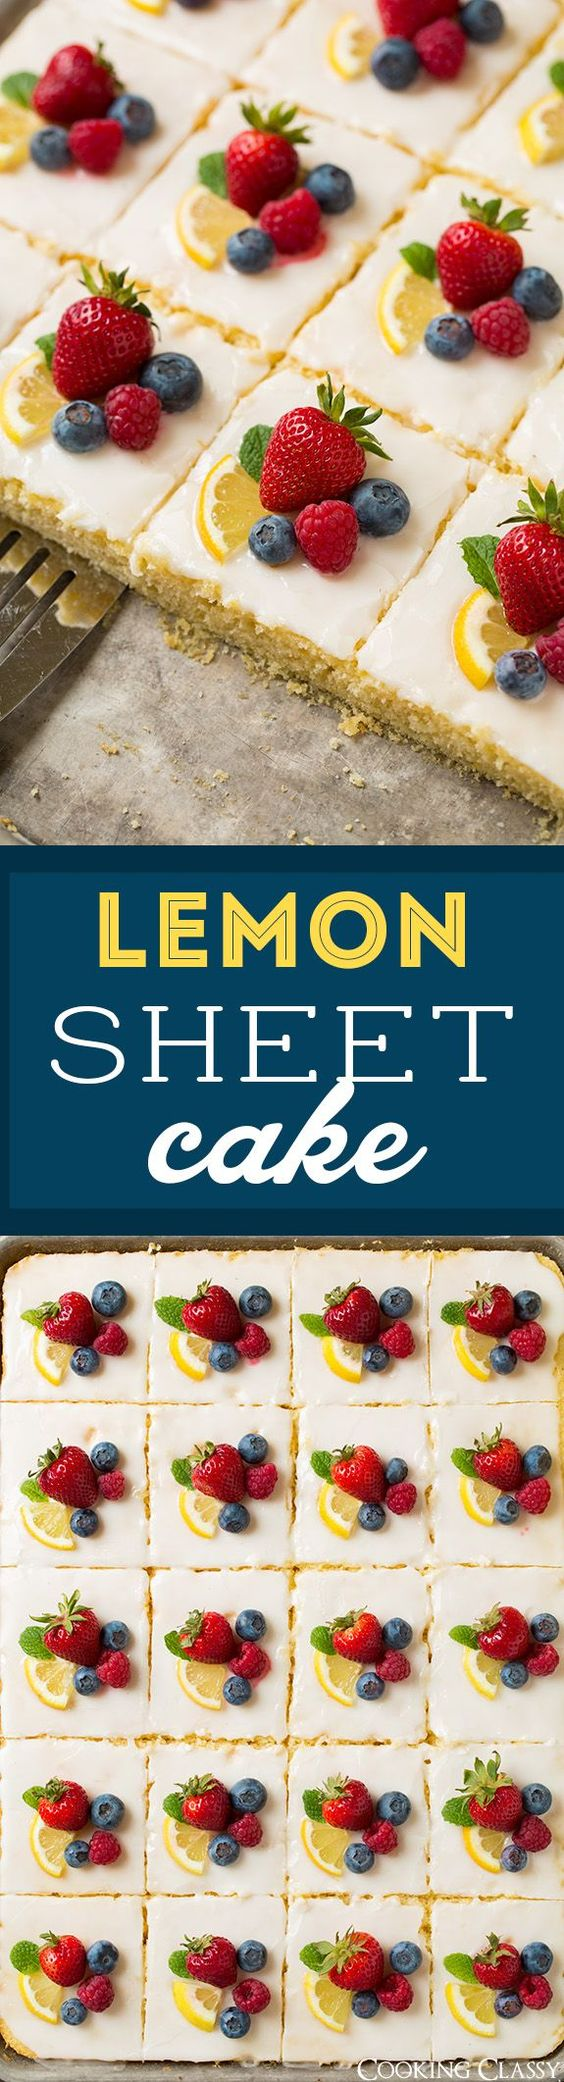 Lemon Sheet Cake Dessert Recipe via Cooking Classy - one of the best sheet cakes I've ever had!! So bright and lemony, some kind of berries are a must! The Best EASY Sheet Cakes Recipes - Simple and Quick Party Crowds Desserts for Holidays, Special Occasions and Family Celebrations #sheetcakerecipes #sheetcake #sheetcakes #cakerecipes #cakes #dessertforacrowd #partydesserts #christmasdesserts #thanksgivingdesserts #newyearseve #birthdaydesserts